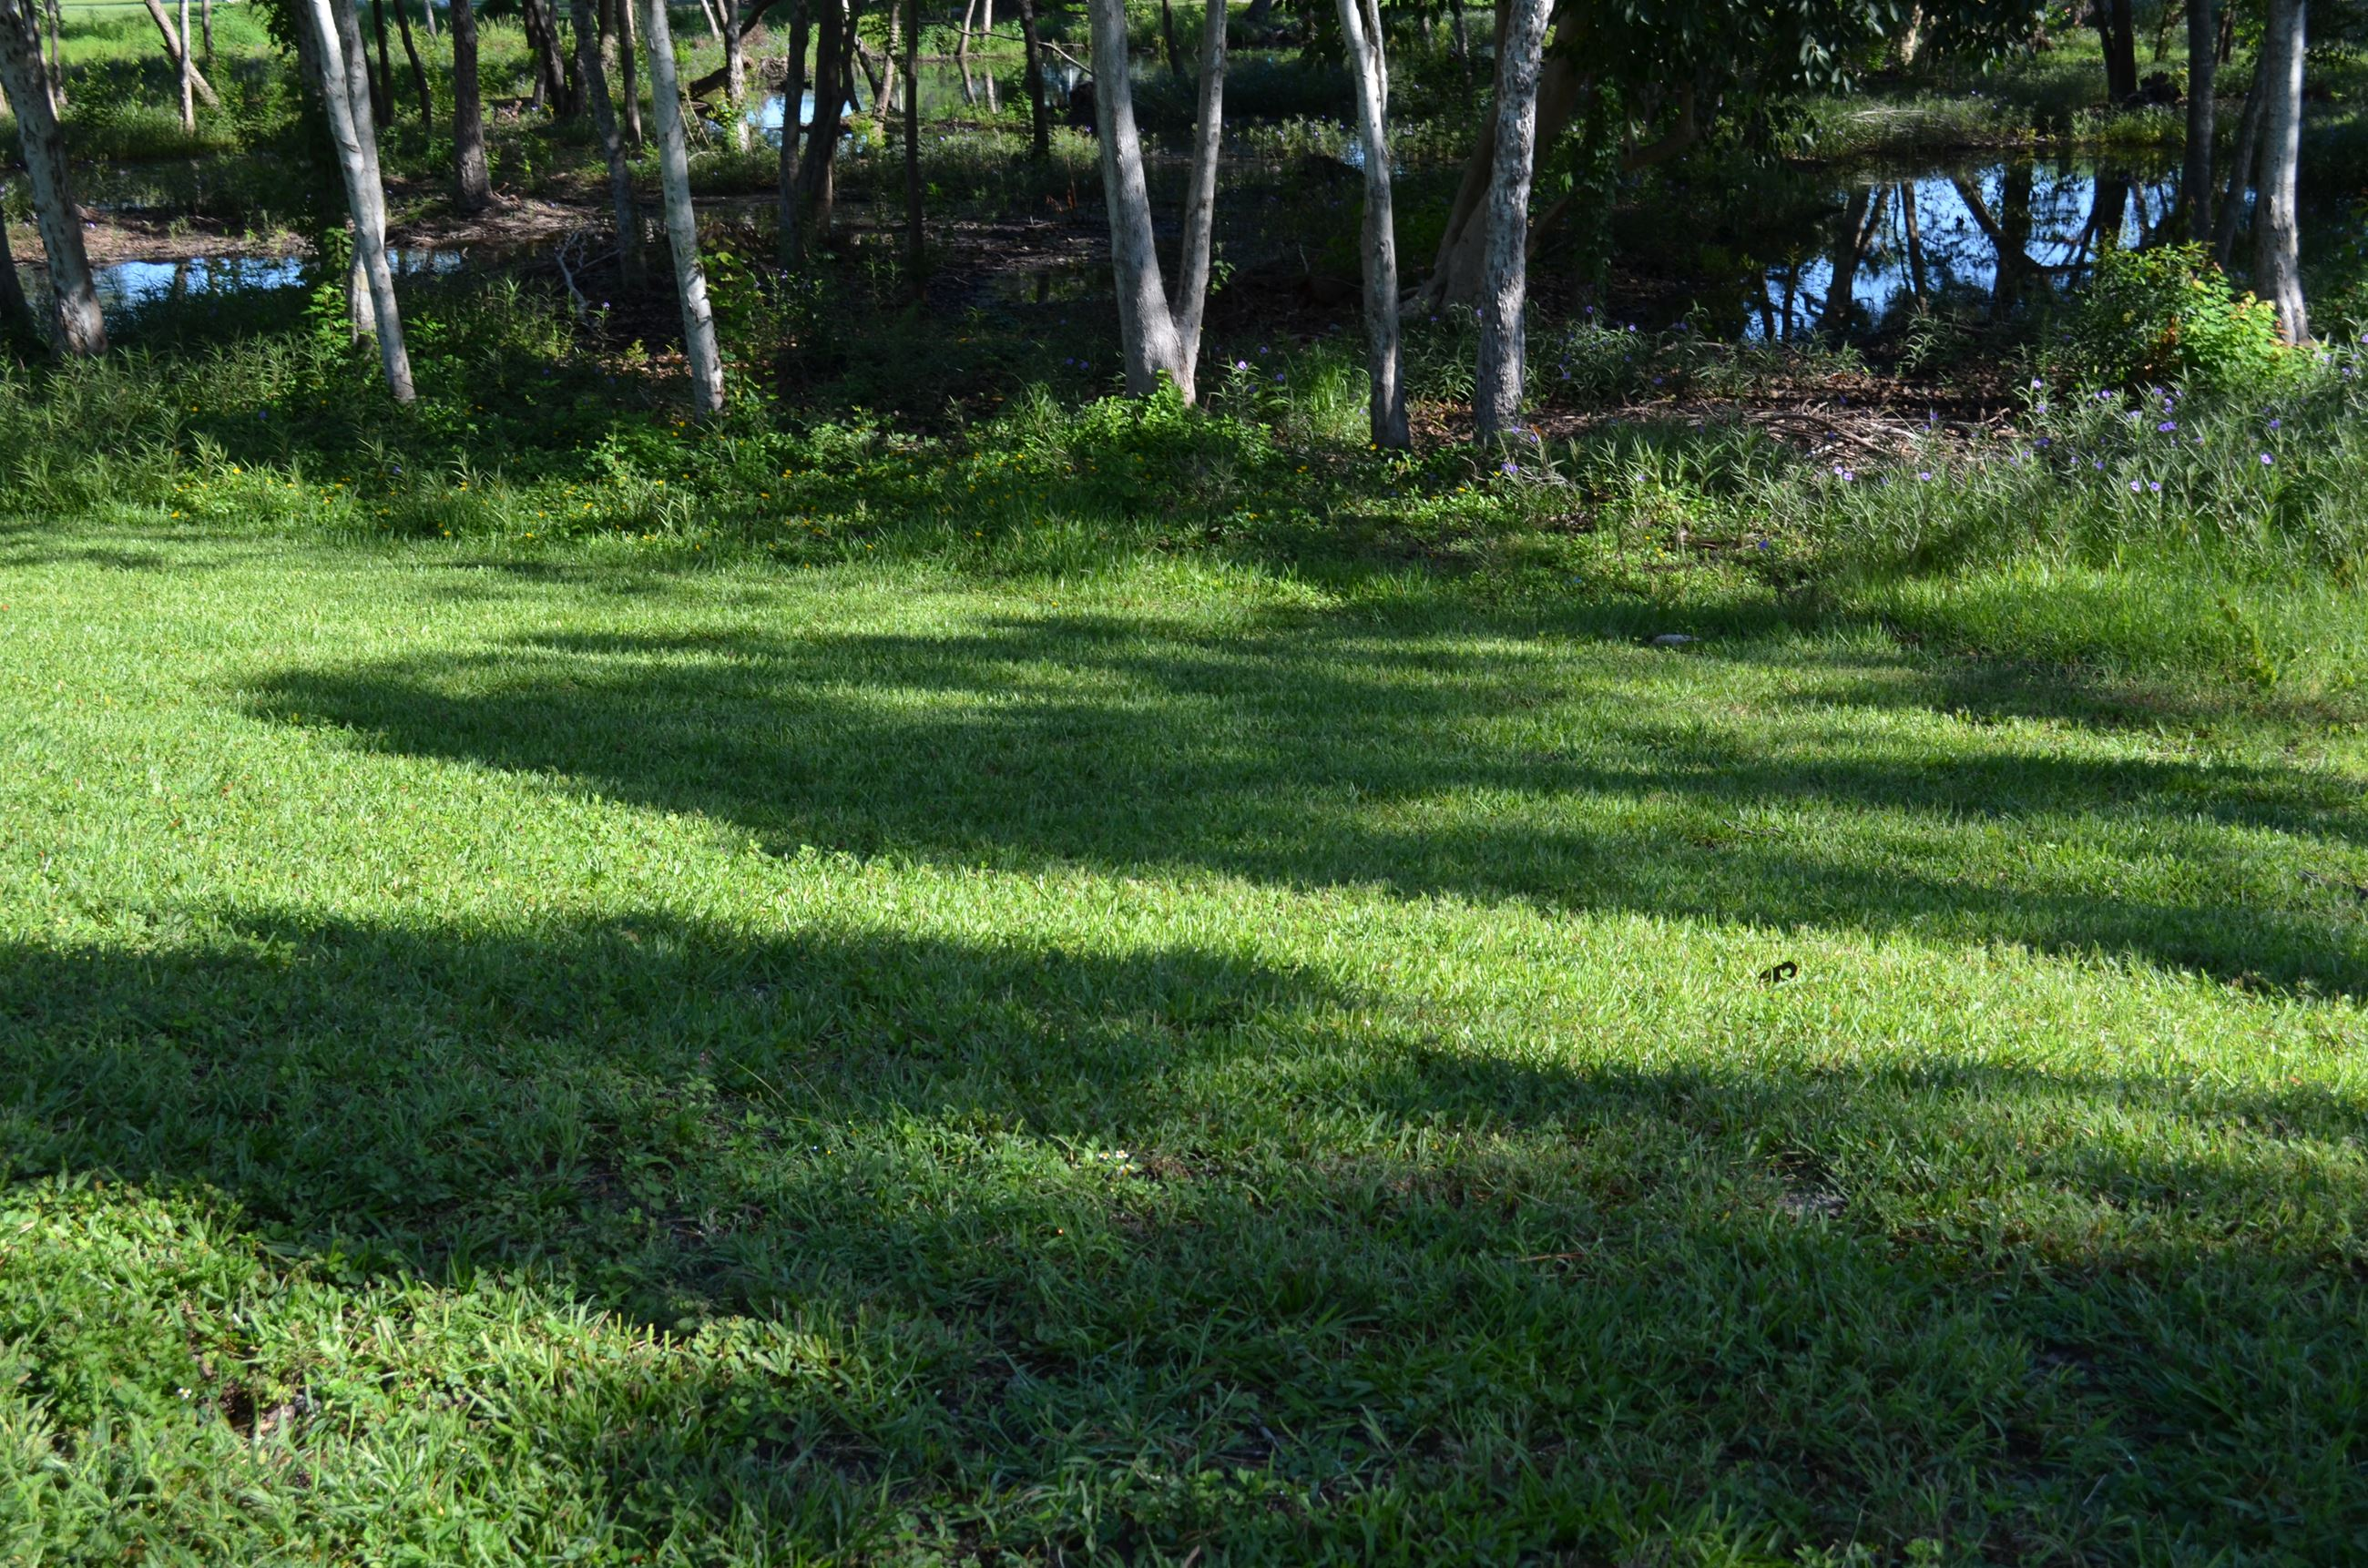 Green Lawn Area Next to Creek